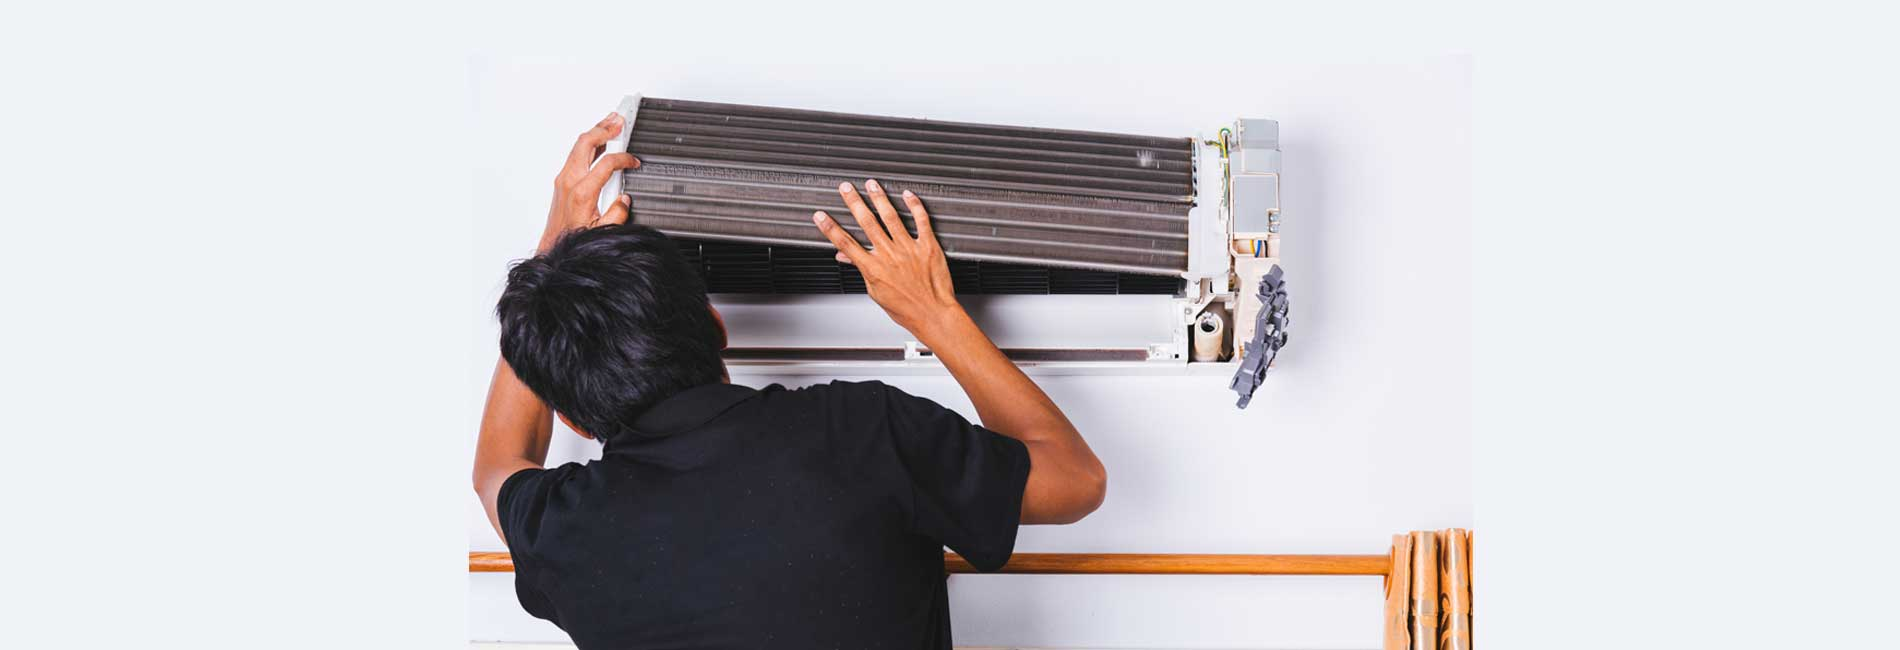 AC Uninstallation and Installation in Perungudi